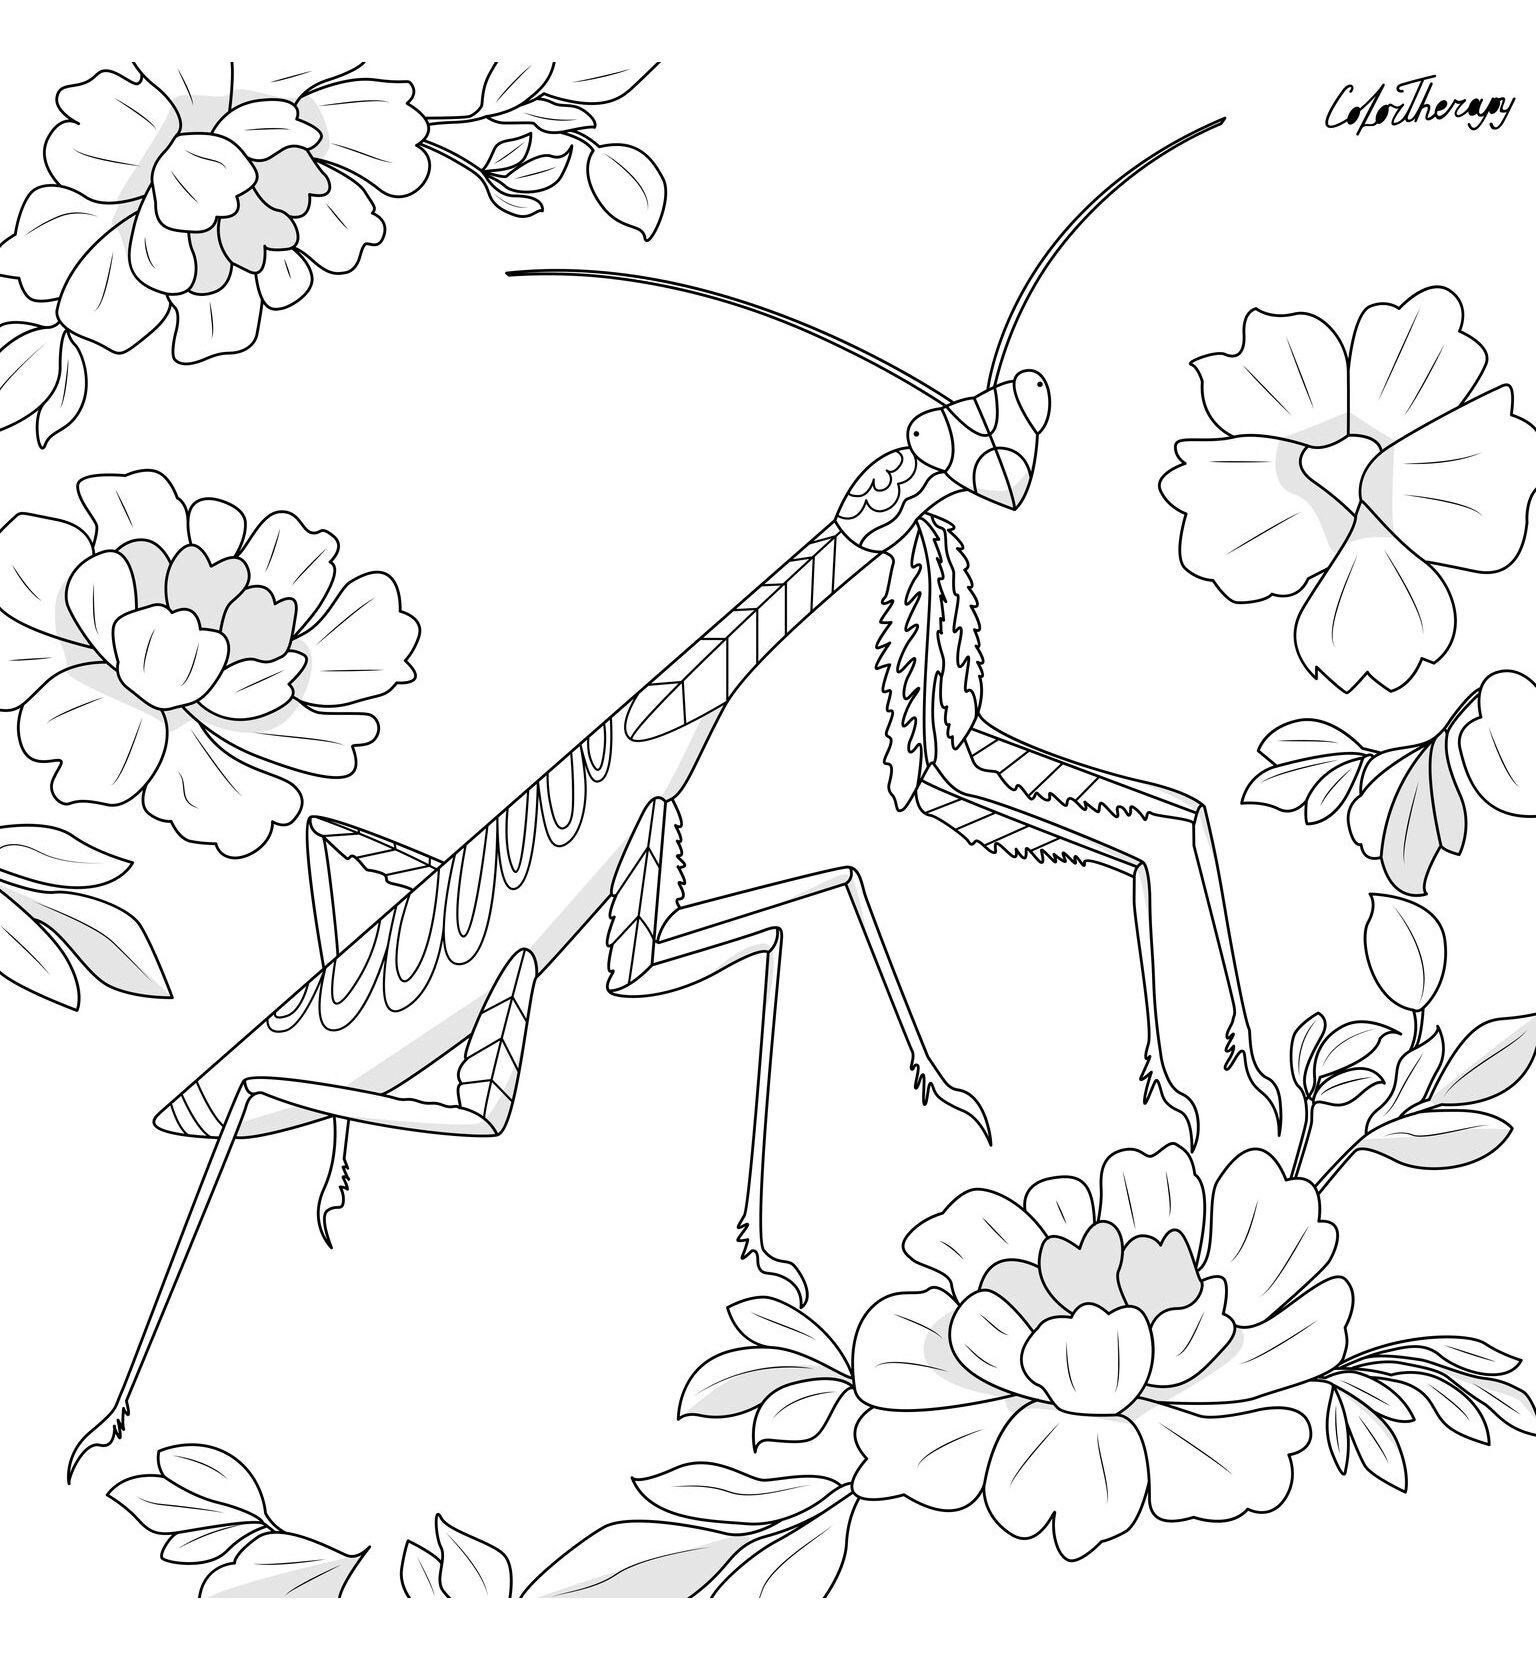 The Sneak Peek For The Next Gift Of The Day Tomorrow Do You Like This One Praying Mantis Coloring Pages Free Coloring Pages Animal Coloring Pages [ 1667 x 1536 Pixel ]